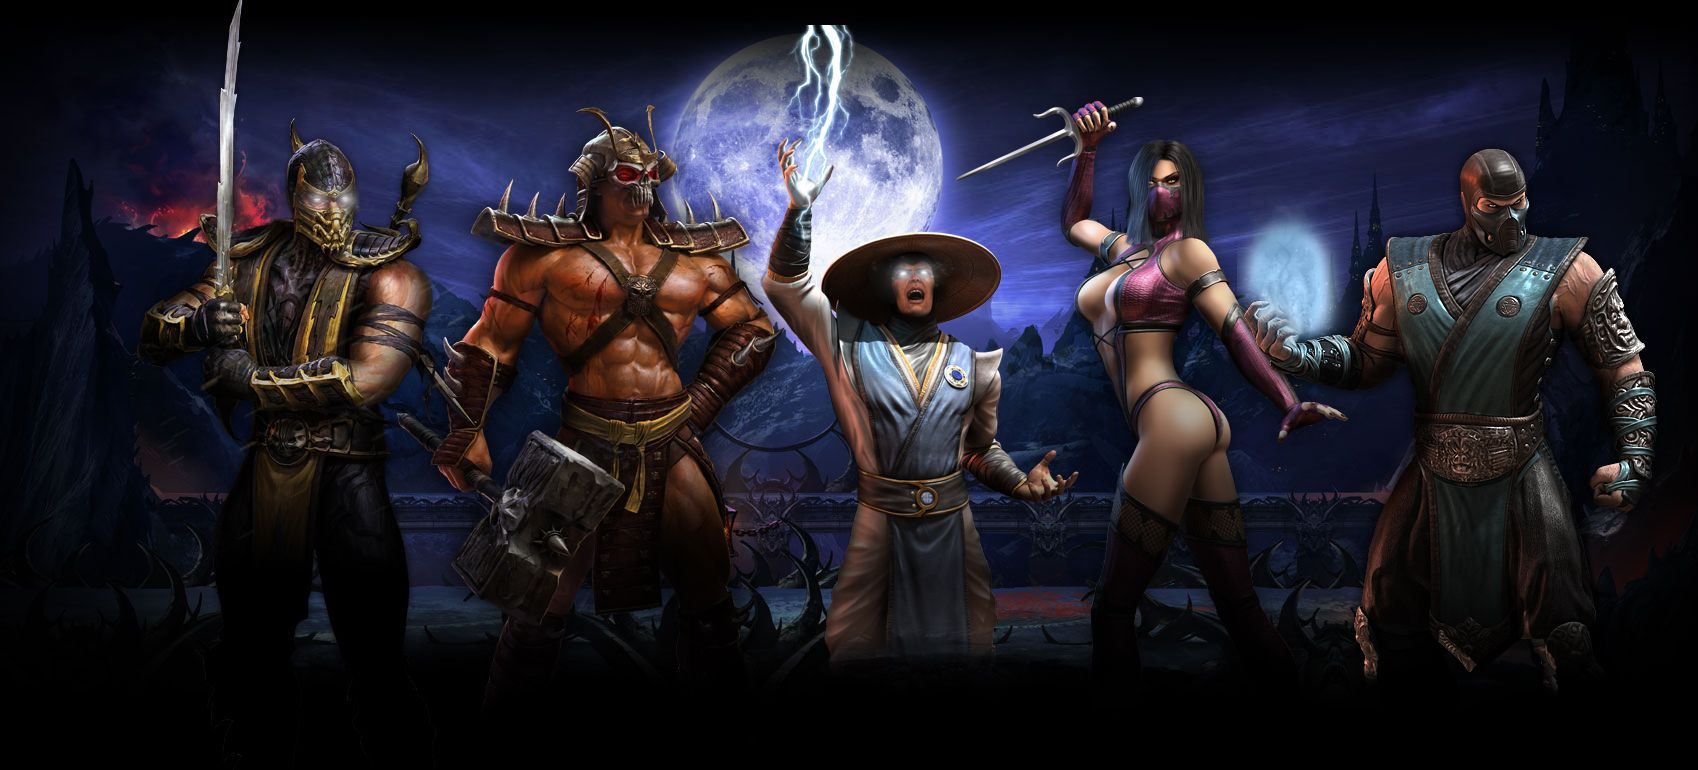 Mortal Kombat 2 Wallpapers - Top Free Mortal Kombat 2